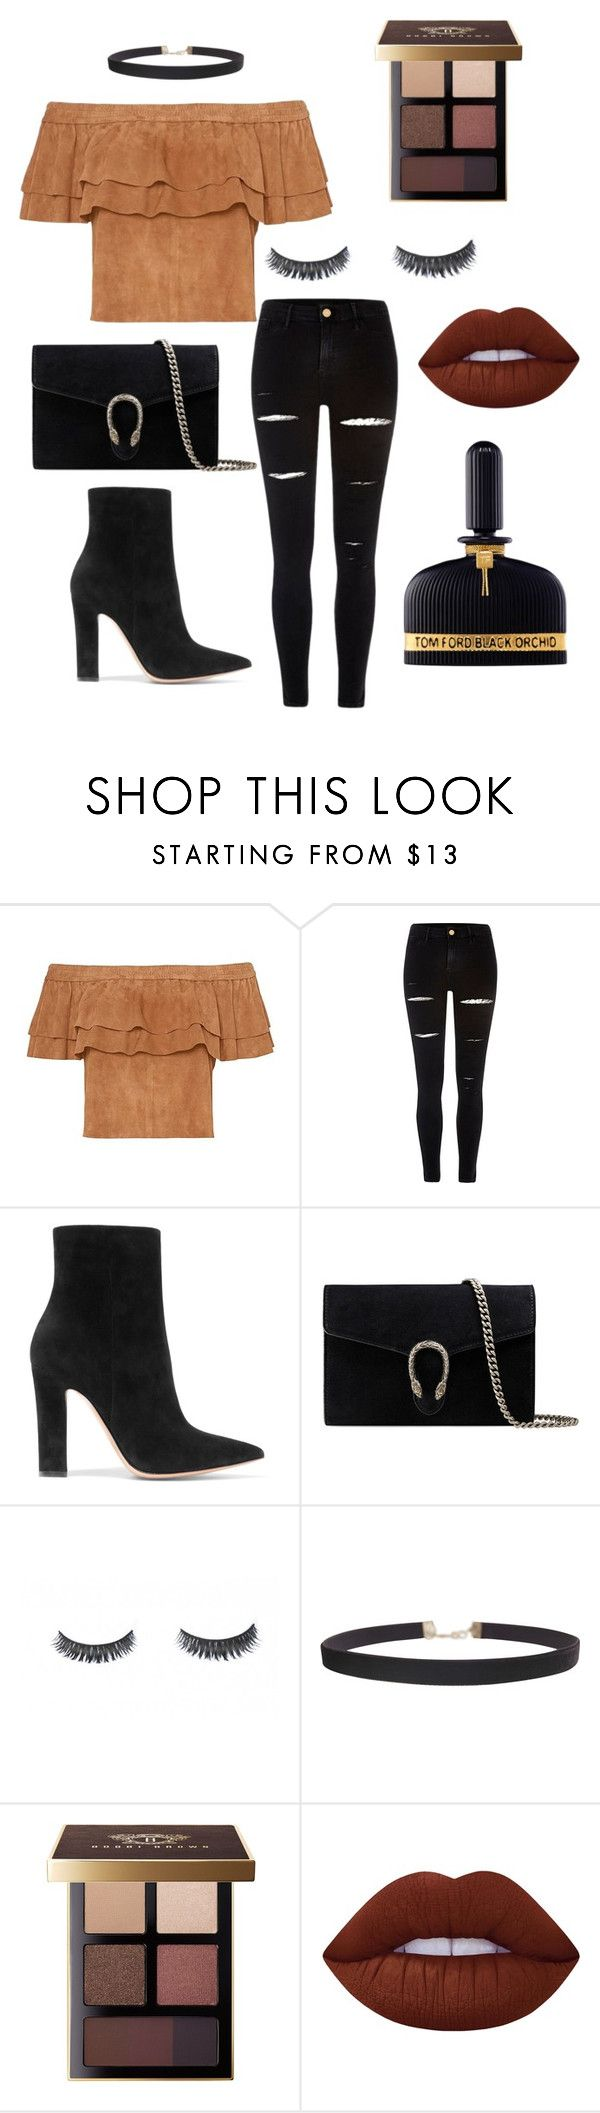 """""""Untitled #34"""" by kylie-cardinali on Polyvore featuring River Island, Gianvito Rossi, Gucci, Humble Chic, Bobbi Brown Cosmetics, Lime Crime and Tom Ford"""